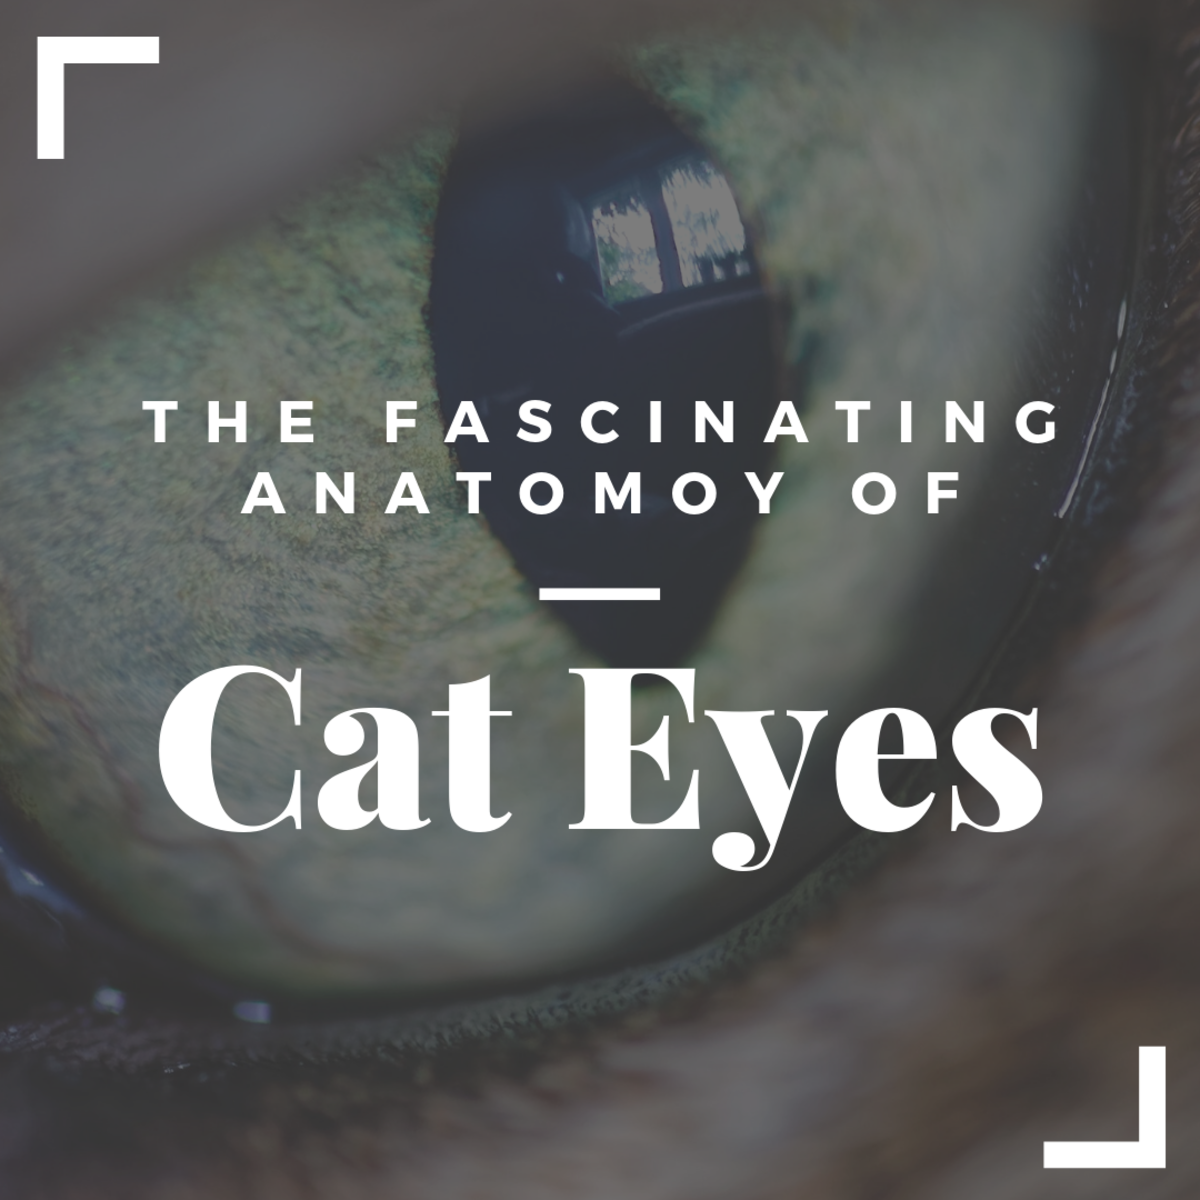 A cat's eye is extremely complex. Many of its features allow the animal to excel in the wild. Learn more about these fascinating creatures and their peepers below!